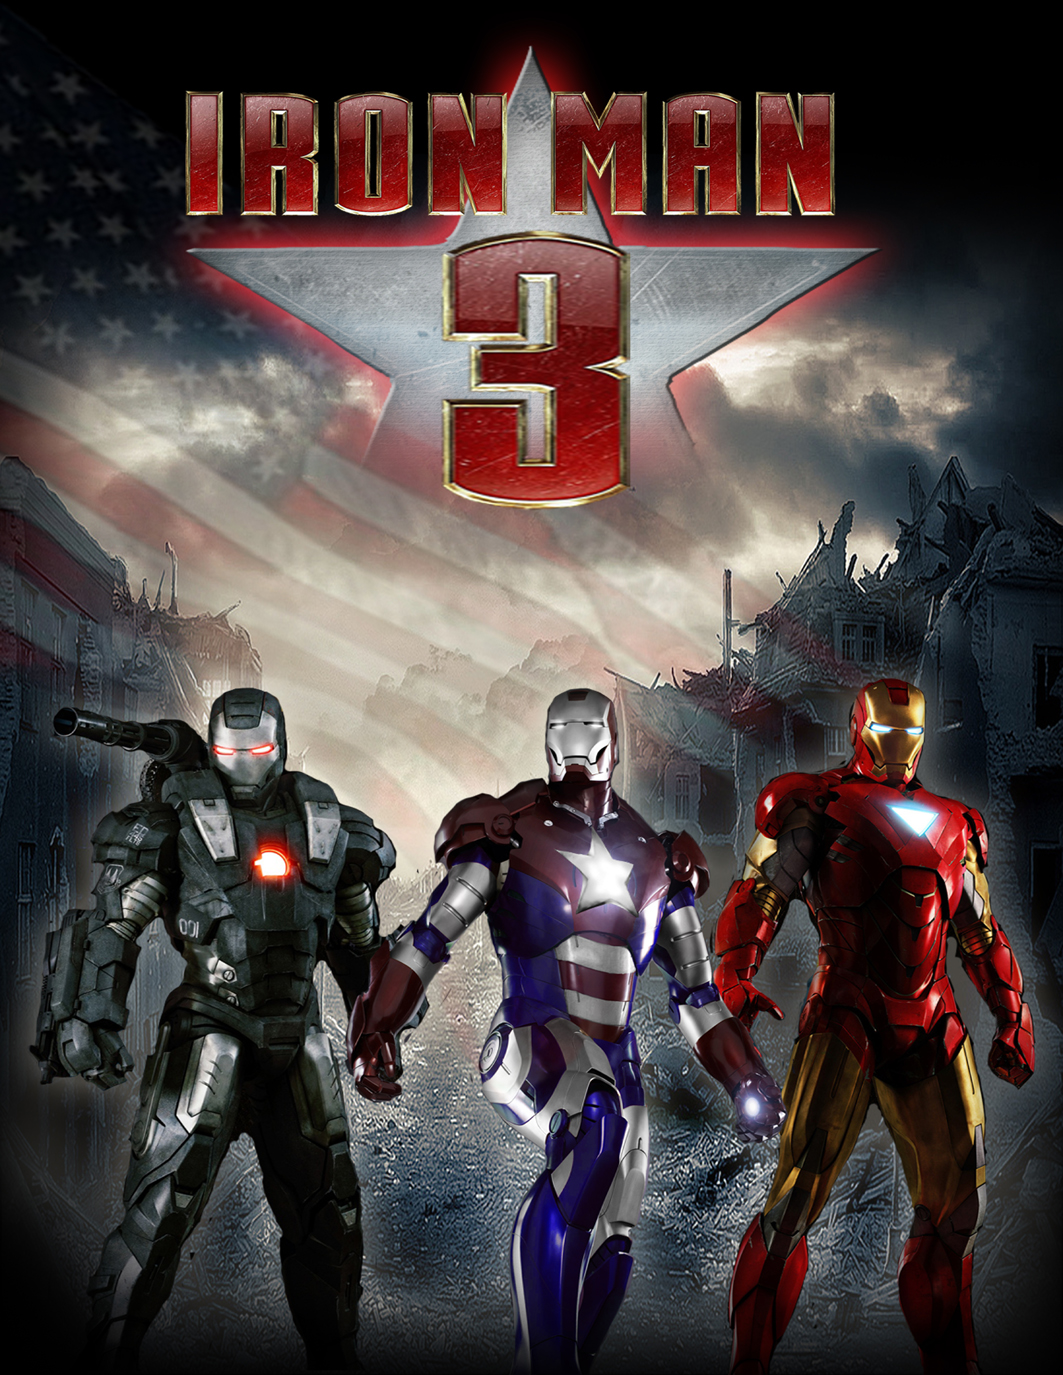 iron man 3 new big or wallpaper size images full links to my previous related posts gunjap. Black Bedroom Furniture Sets. Home Design Ideas